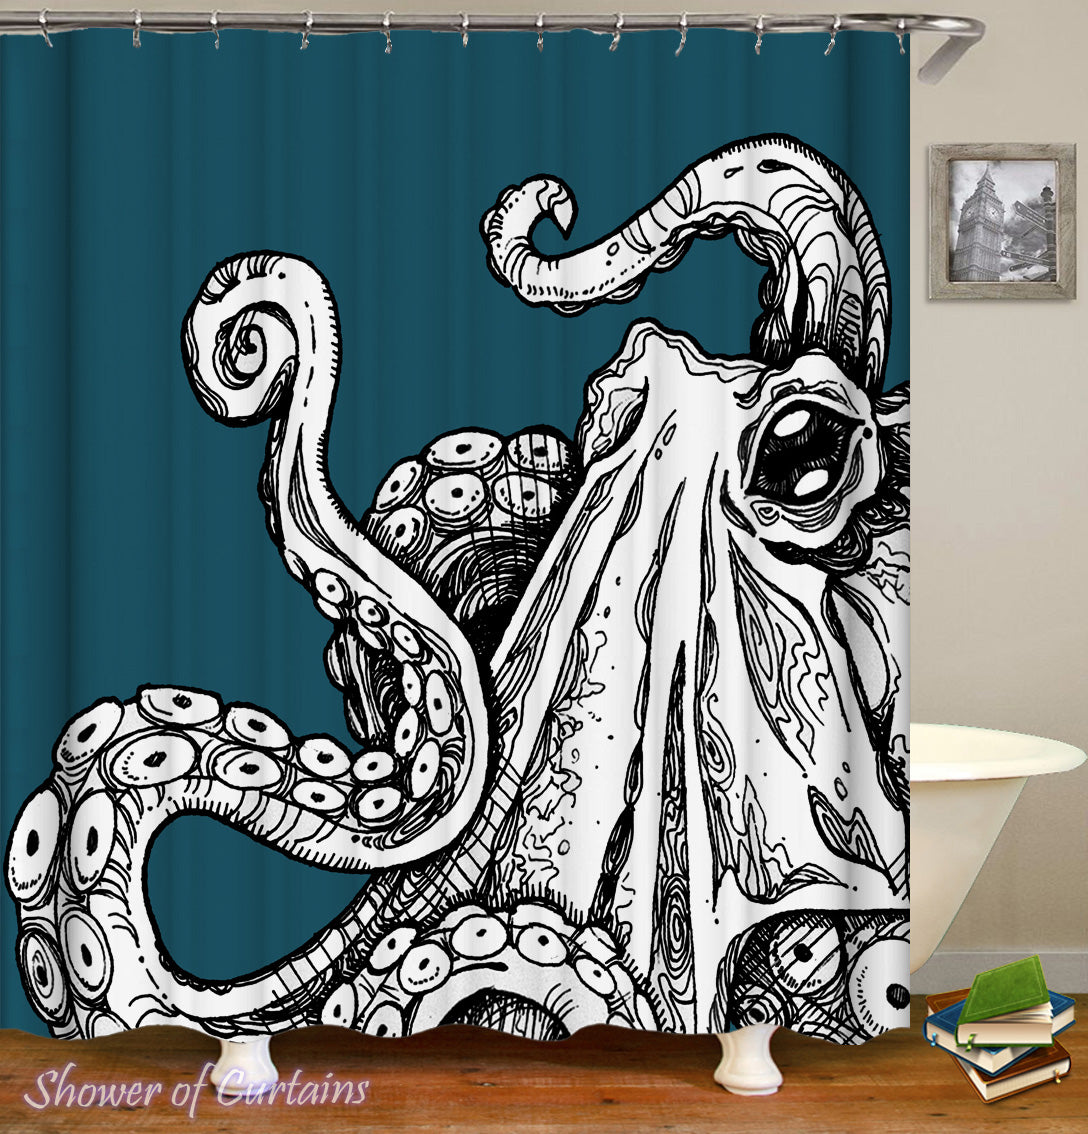 Octopus Shower Curtain Of Black White Over Turquoise